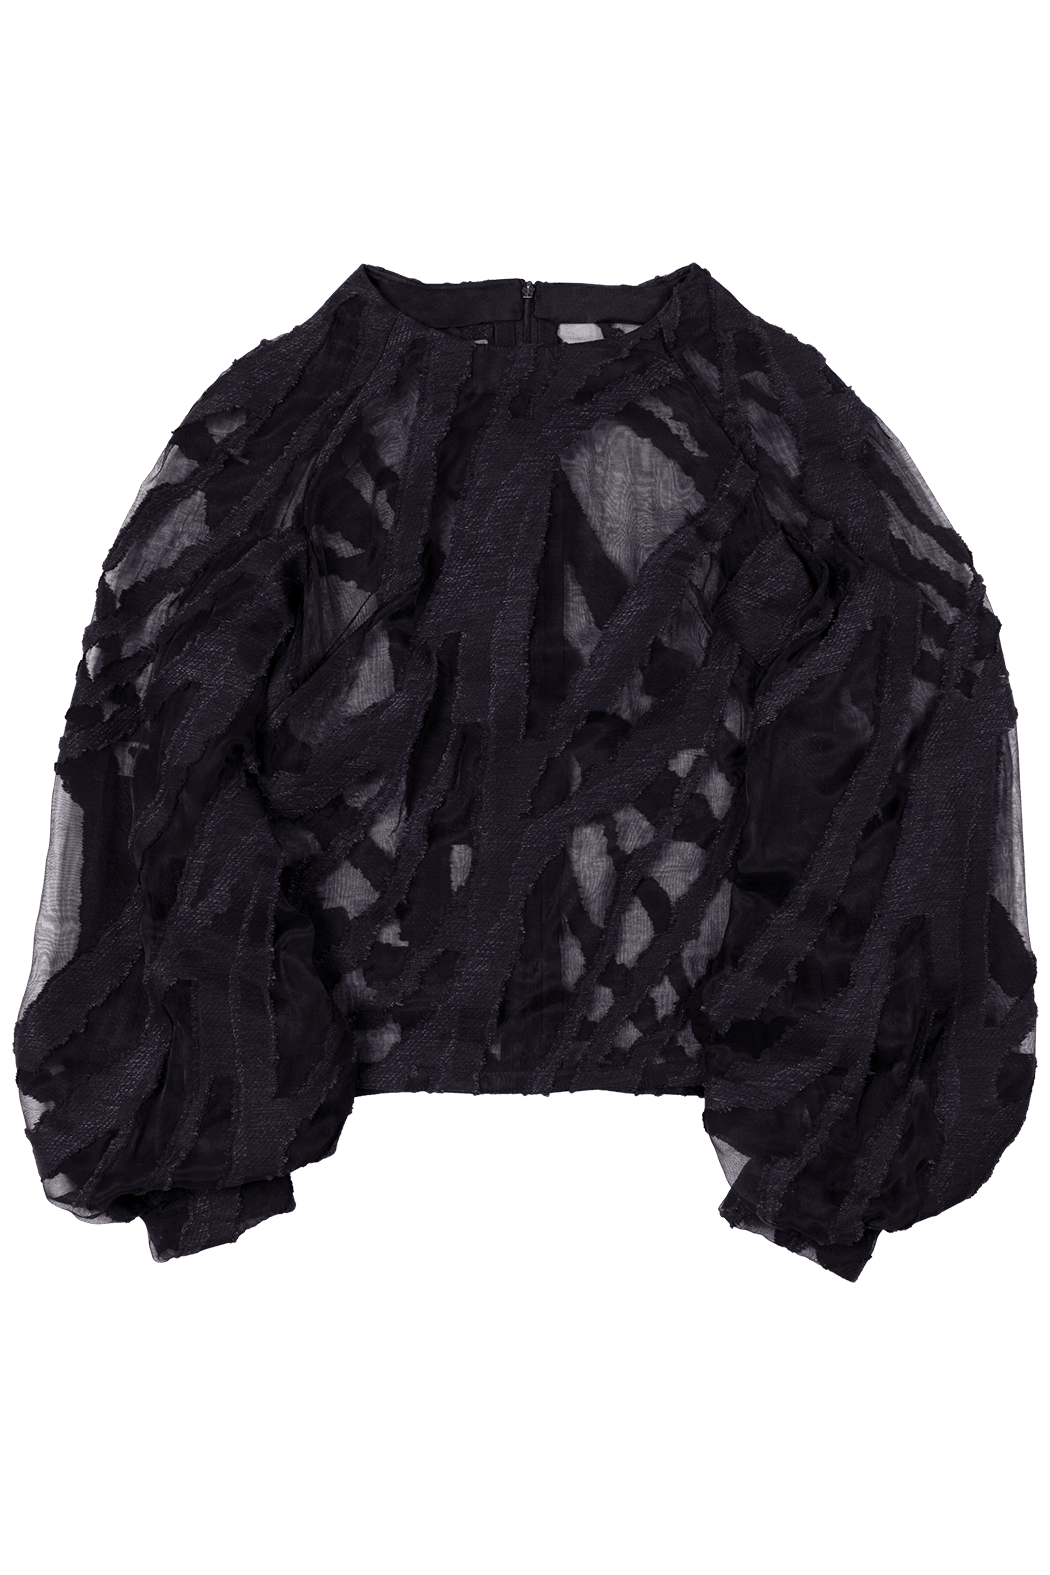 Black Graphic Semi Sheer Wave Pattern Top Flat